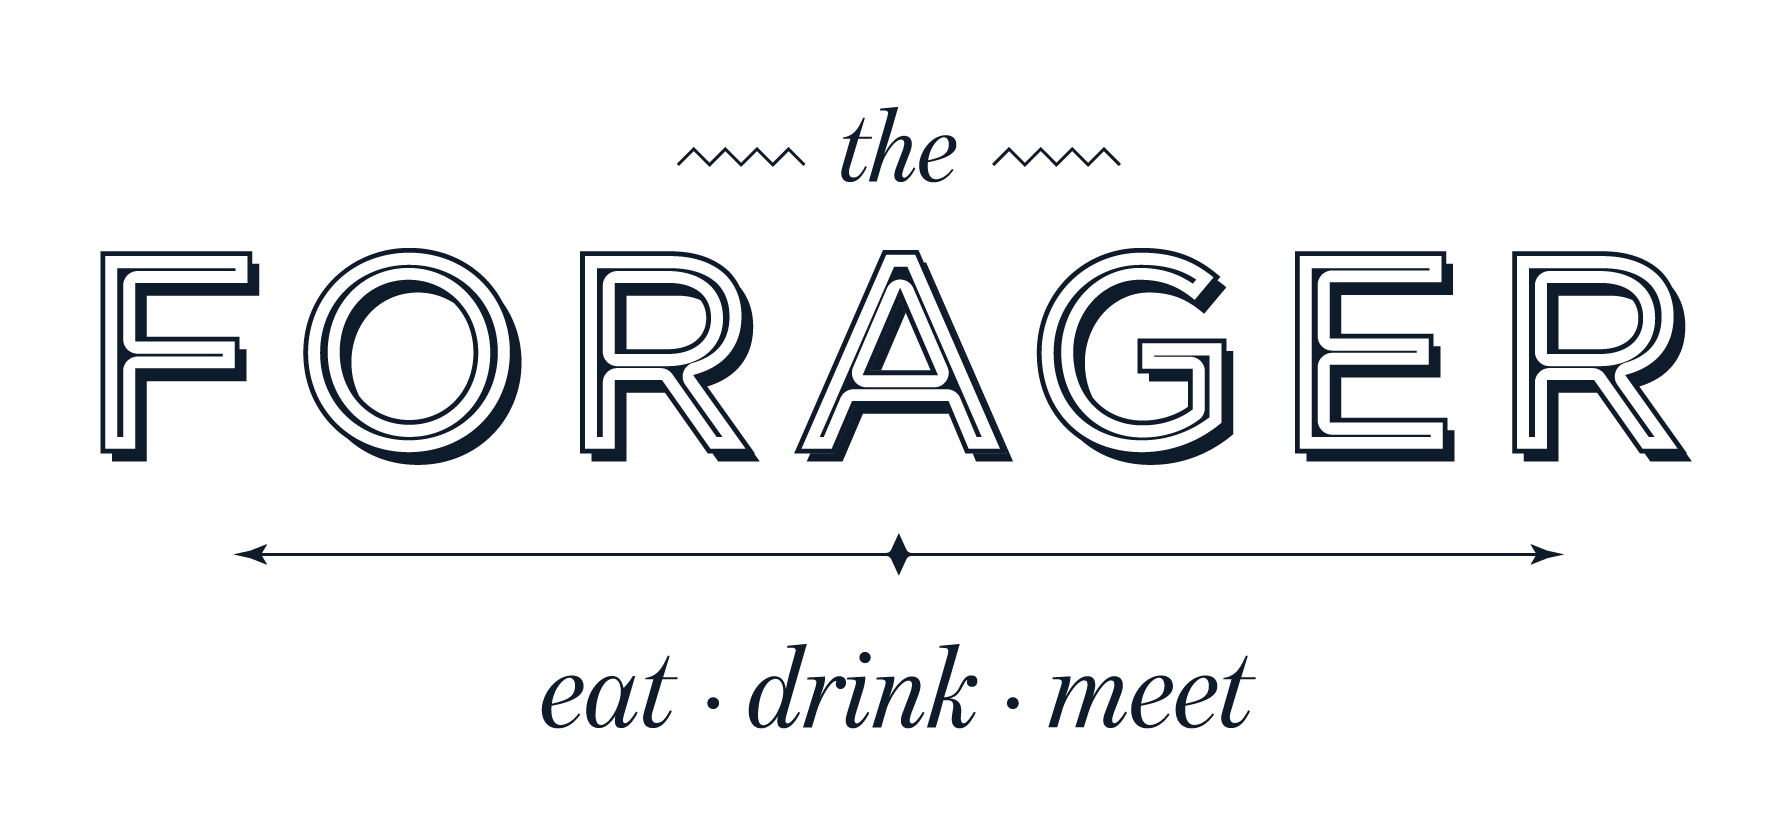 The Forager Restaurant logo